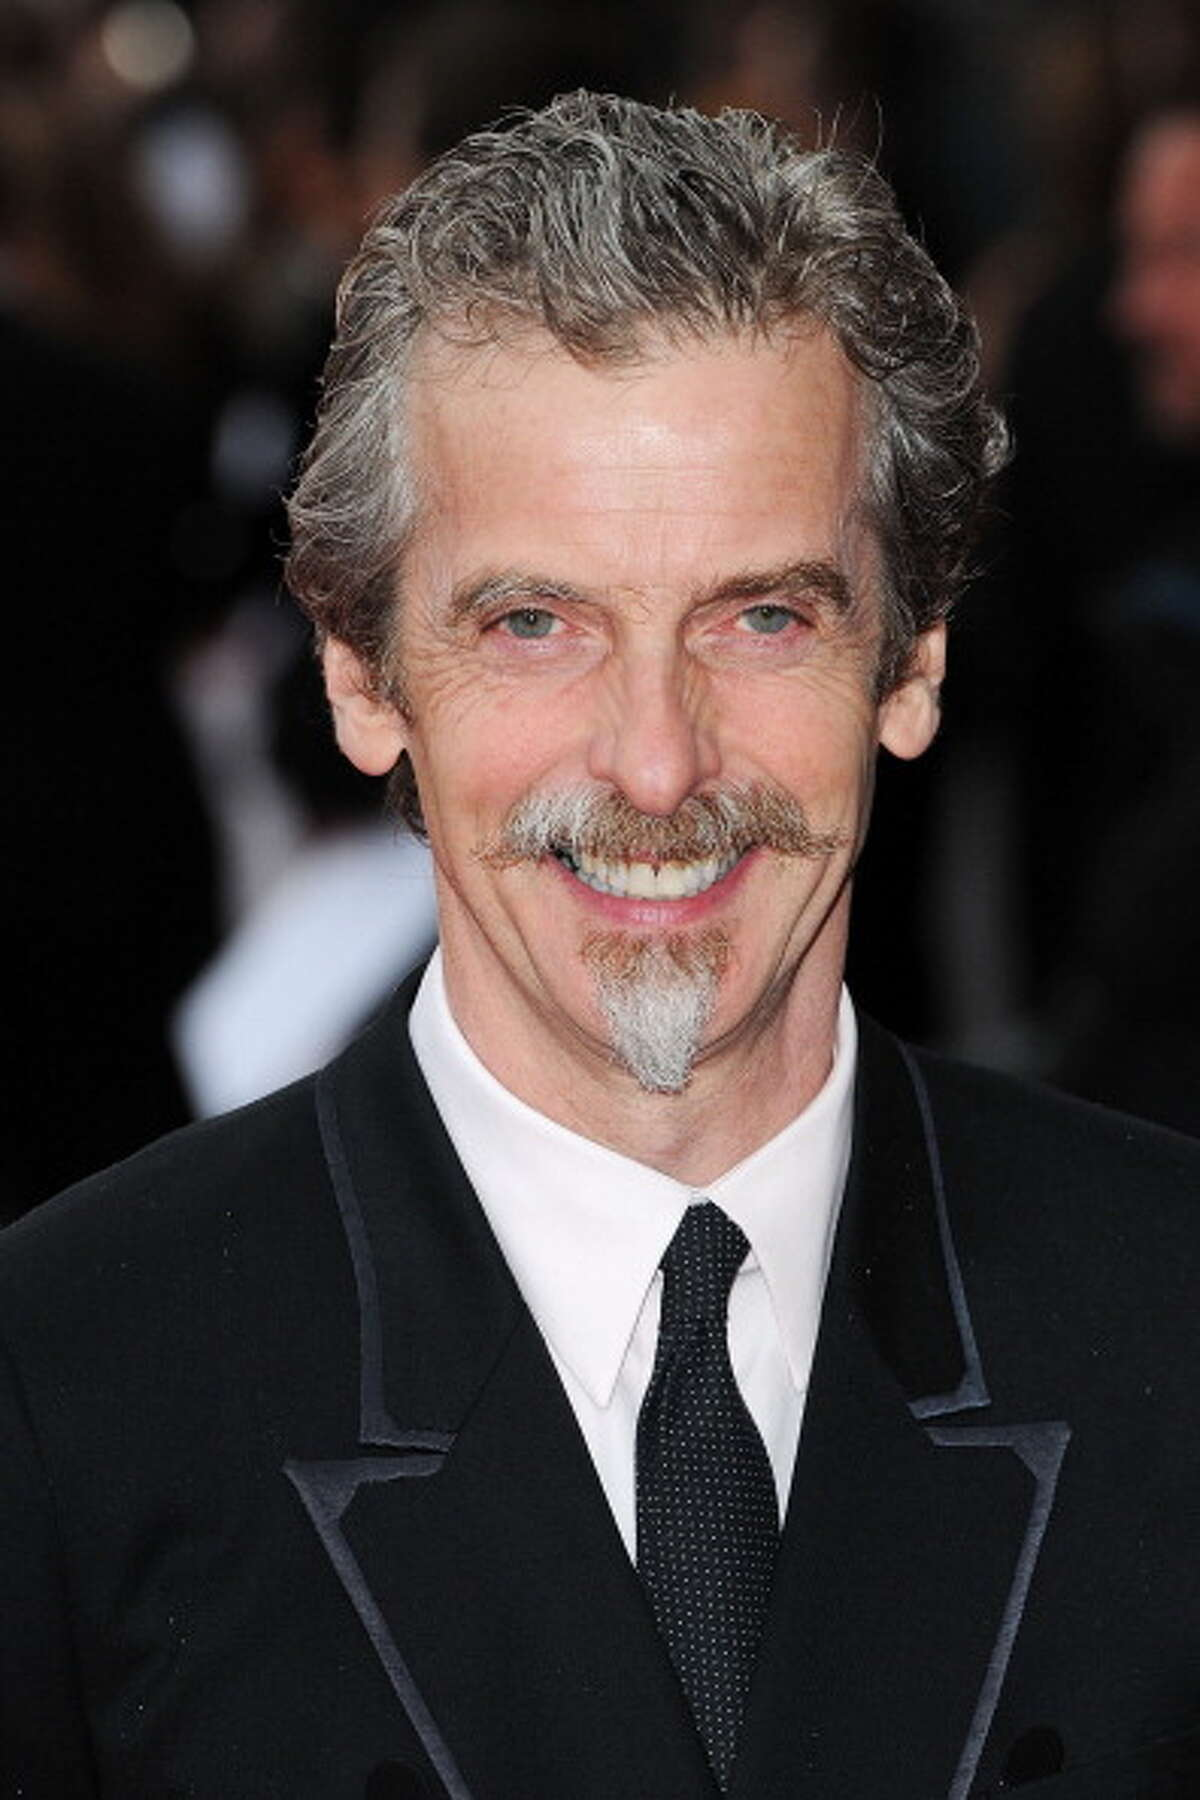 Peter Capaldi played the role of The Doctor for more than 40 episodes, wrapping up his tenure in 2017.